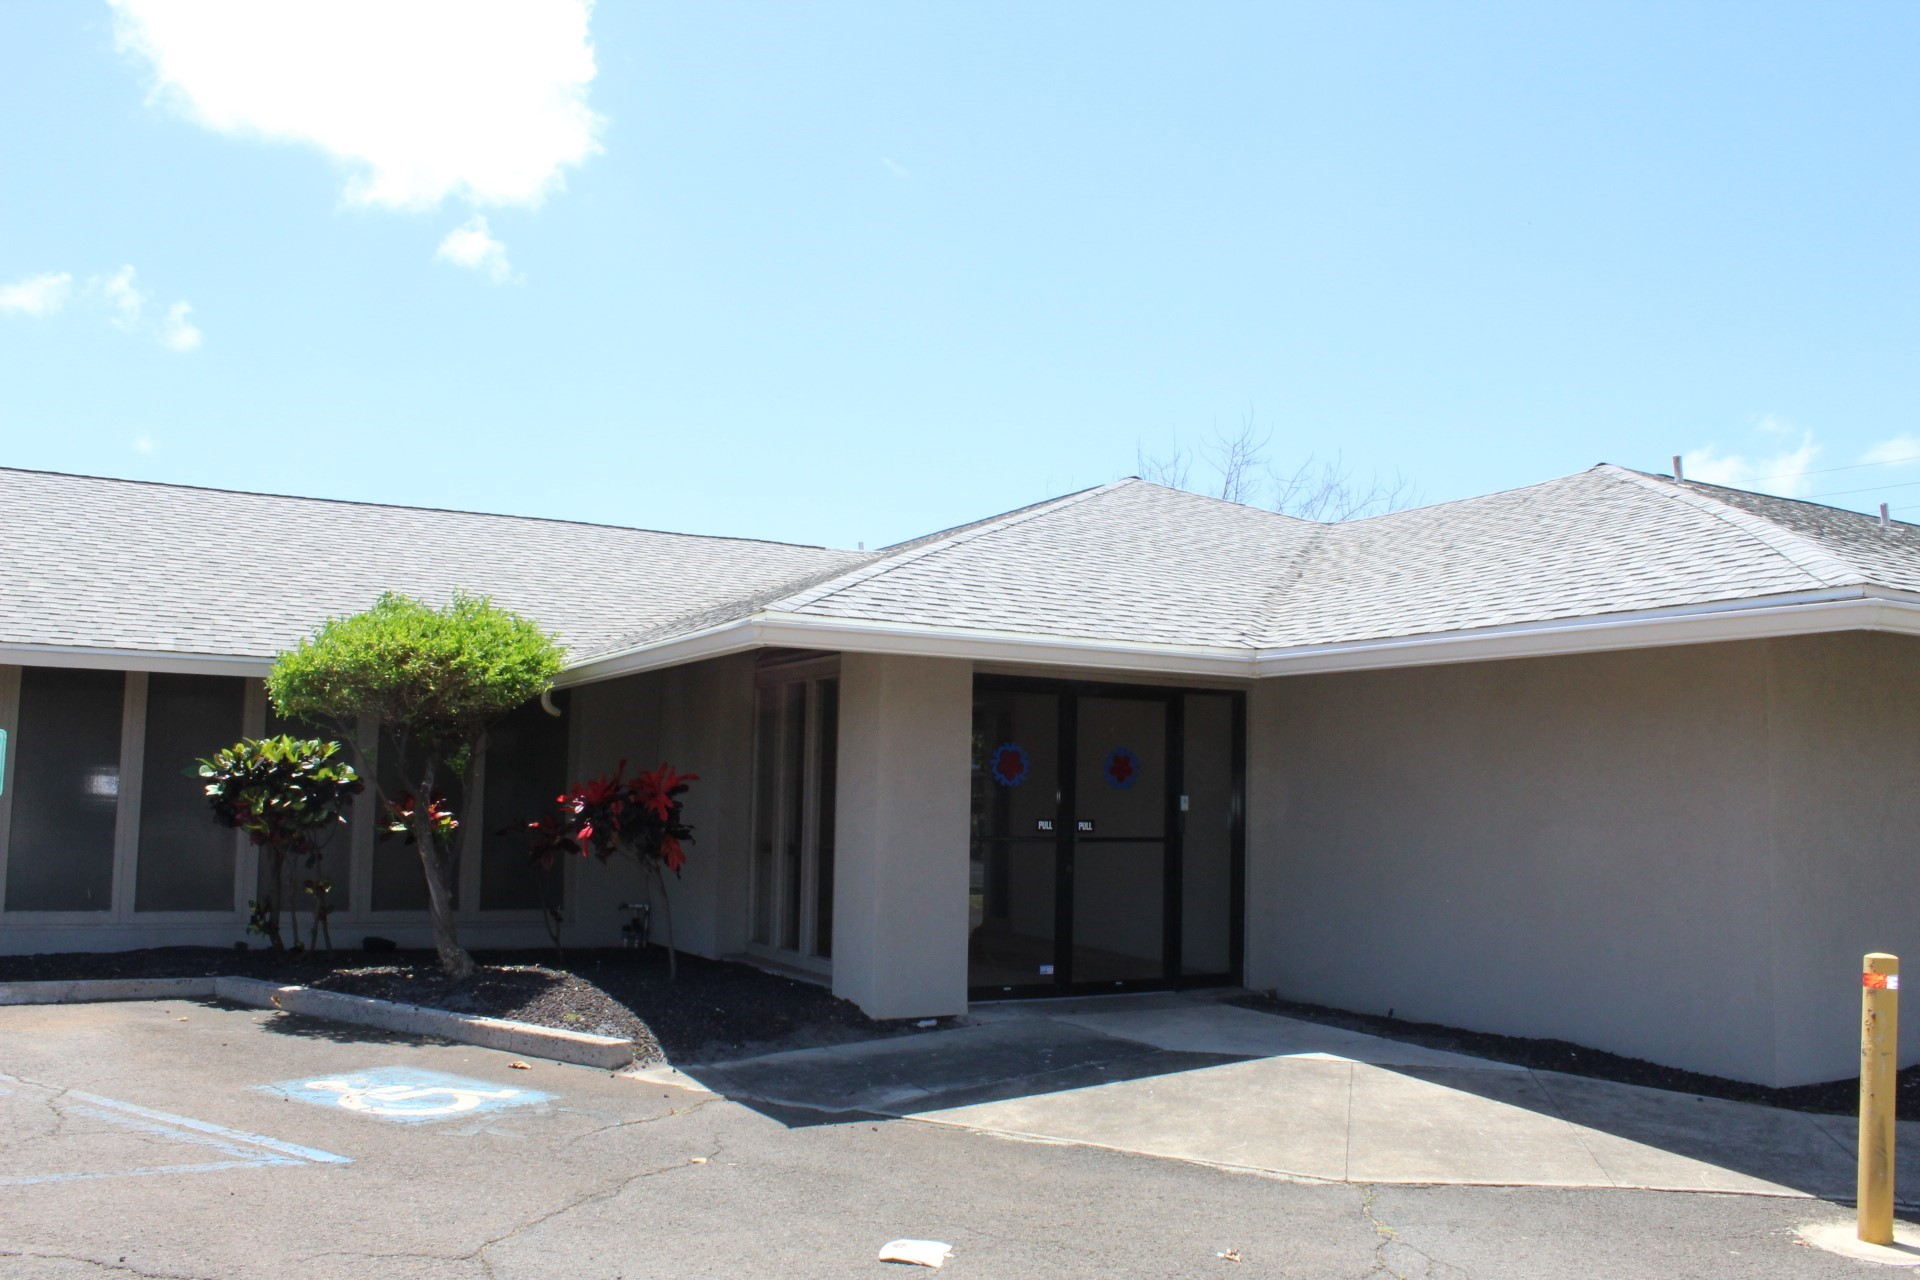 Kokua Realty Commercial Real Estate For Lease 53 Puunene Kahului Hawaii Keoni Fursse Hawaii Investment Properties